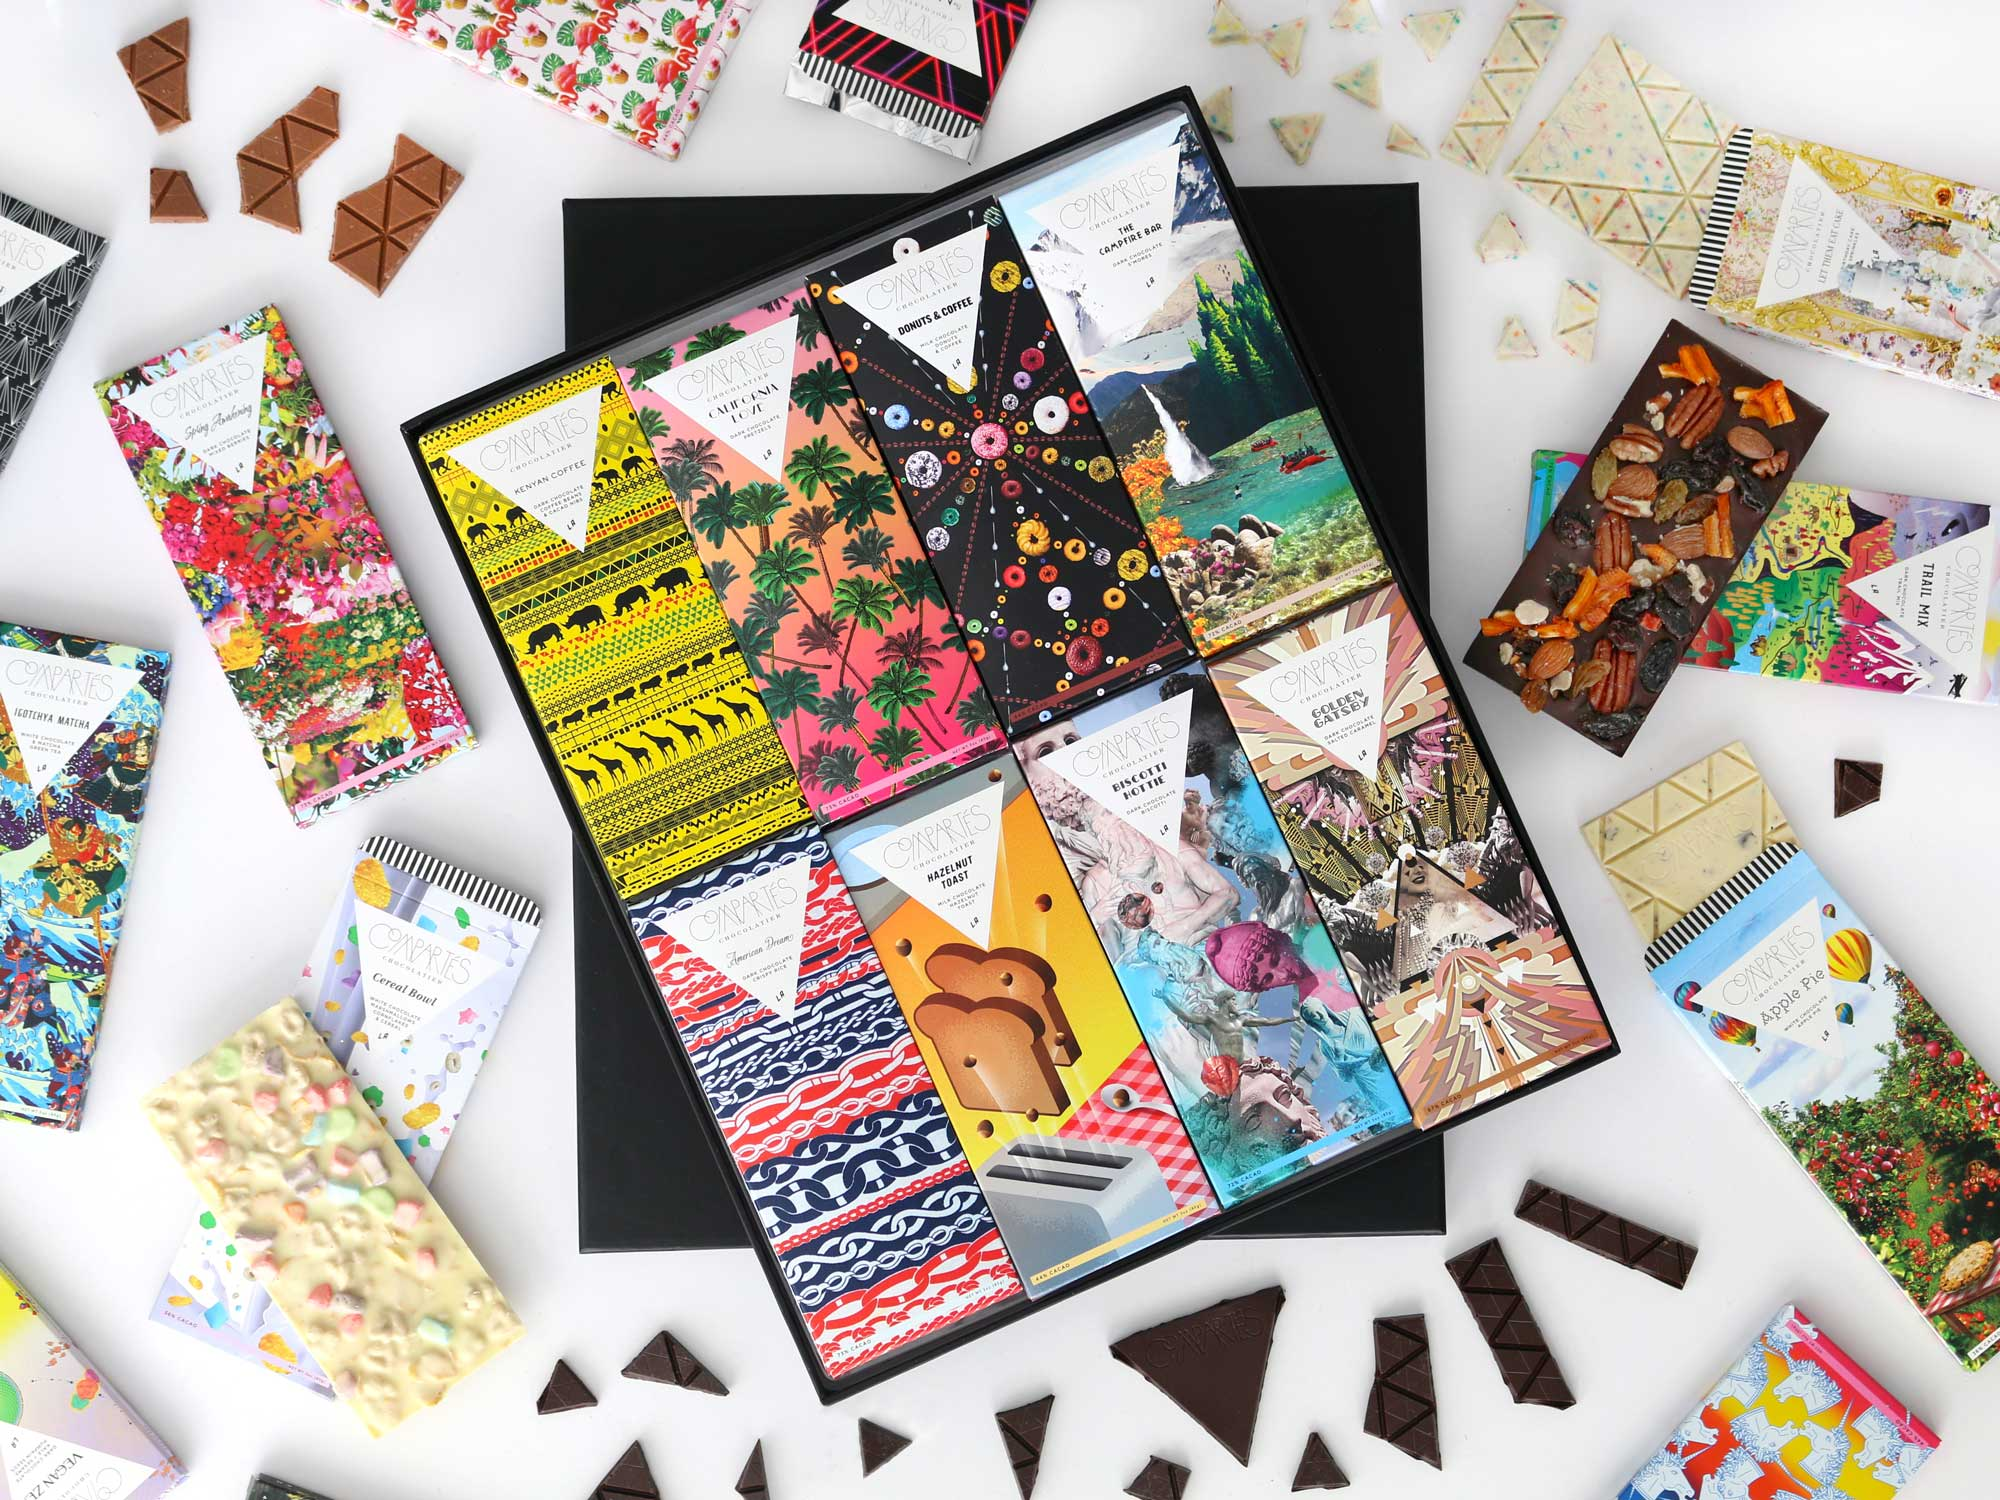 The Most Beautiful Chocolate Wrappers We've Ever Seen